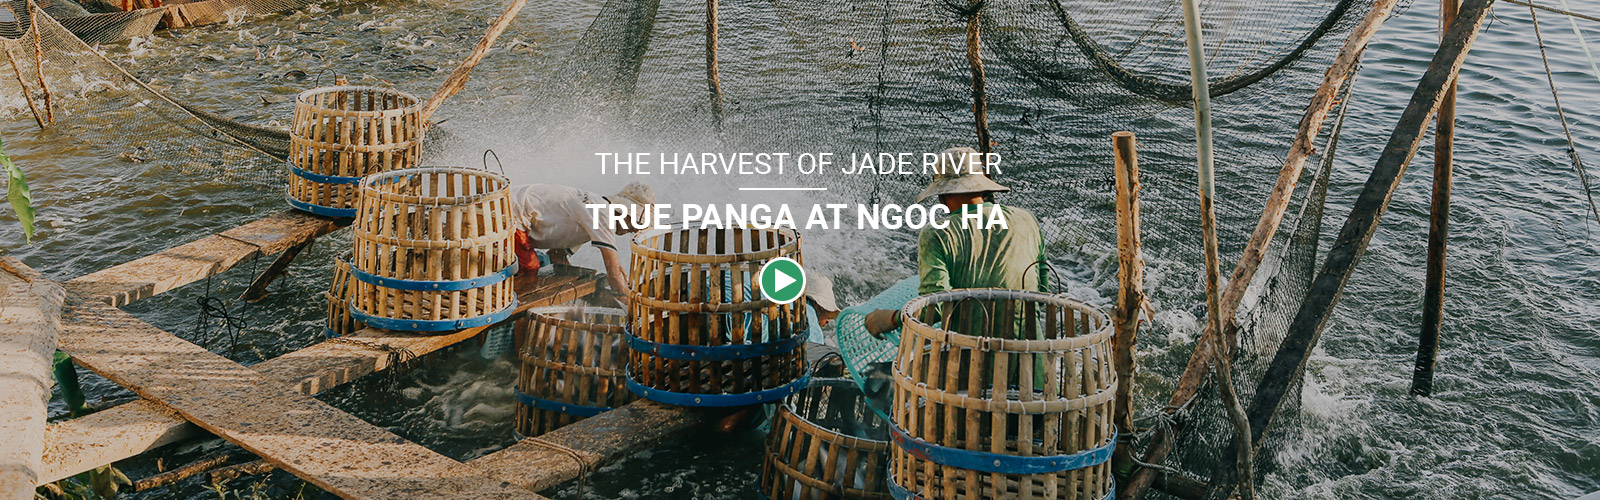 Ngoc Ha Jade River